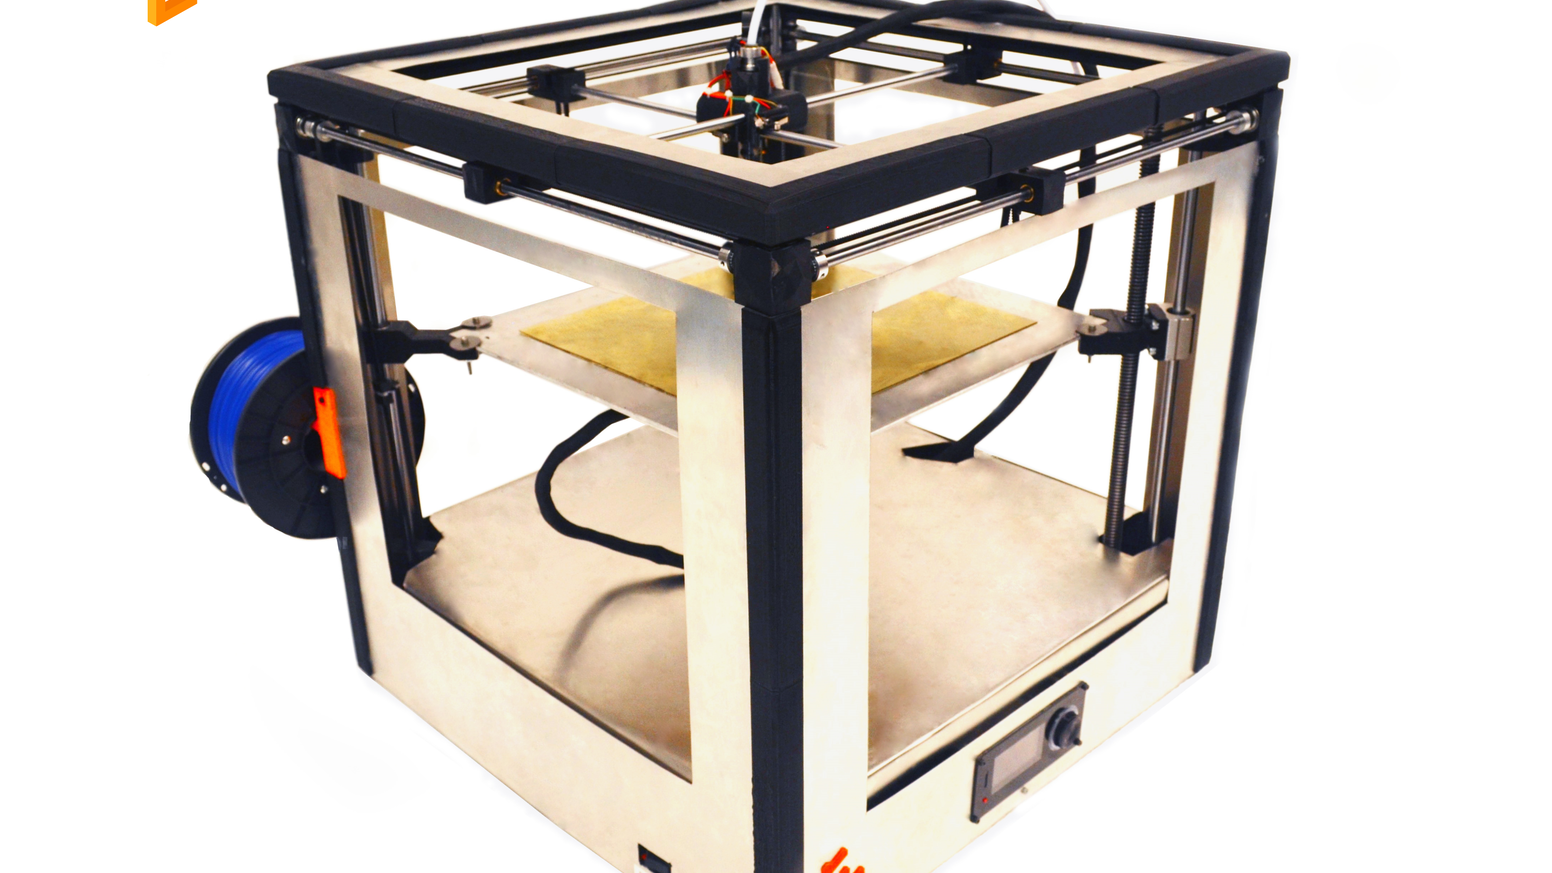 3D printer designed around speed and reliability. Prints more than 6X faster than leading consumer printers.